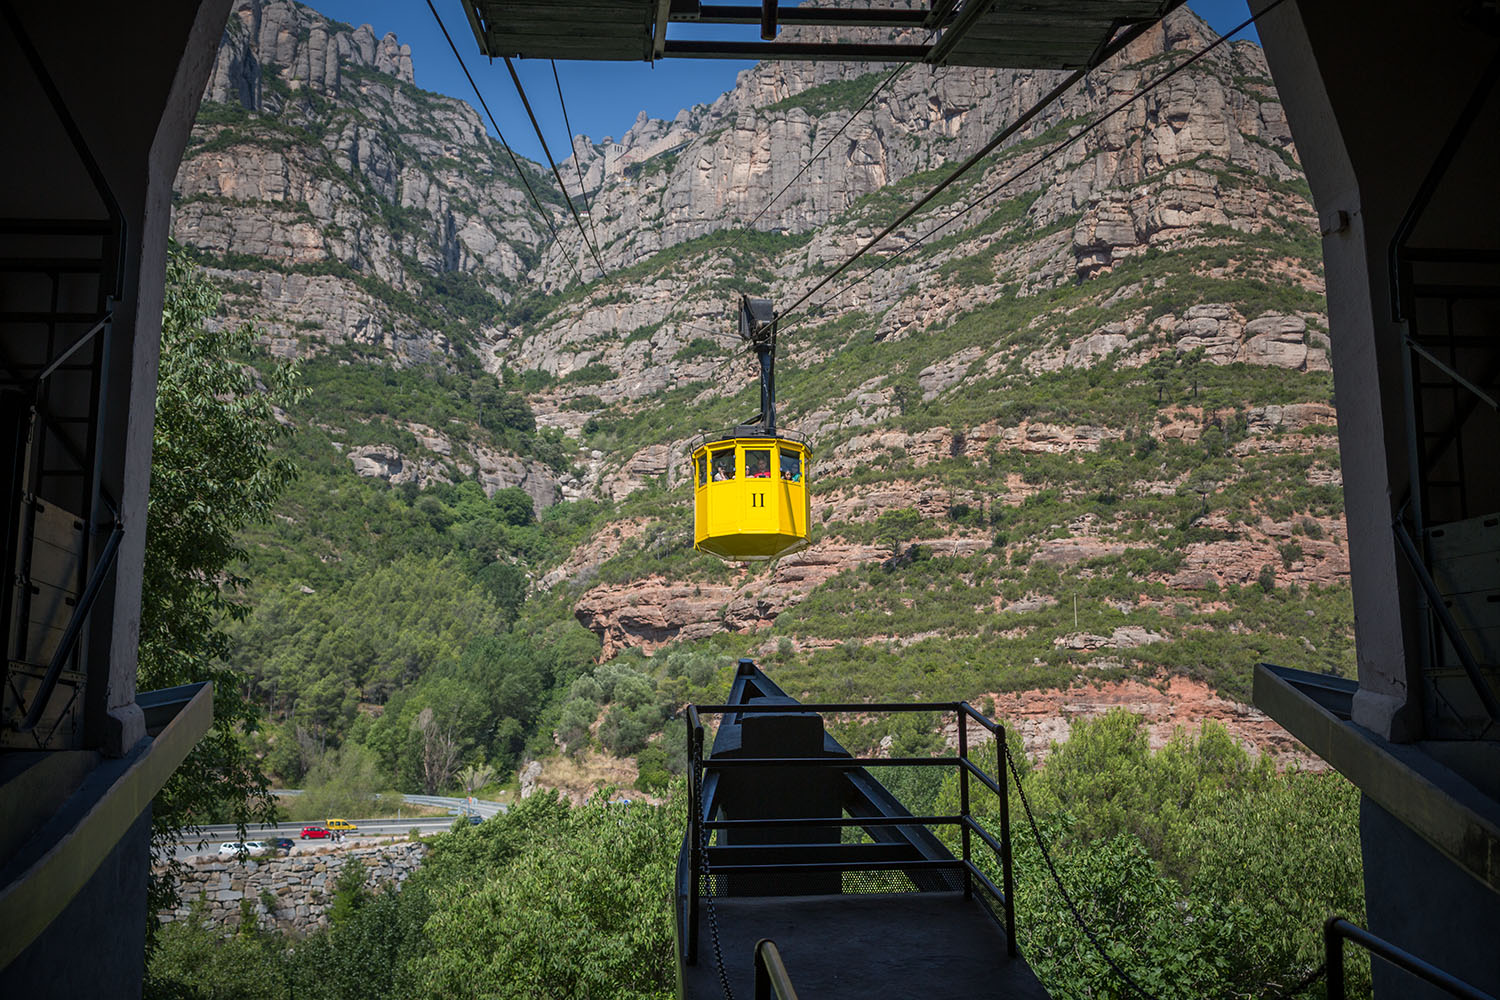 X benedictian abbeyX black madonnaX cable car to the Montserrat MonasteryX funicular montserratX hiking in montserratX how to get to MontserratX Montserrat MonasteryX montserrat pricesX Montserrat SpainX r5 trainX things to do in MontserratX train directionsX wildlife in montserrat